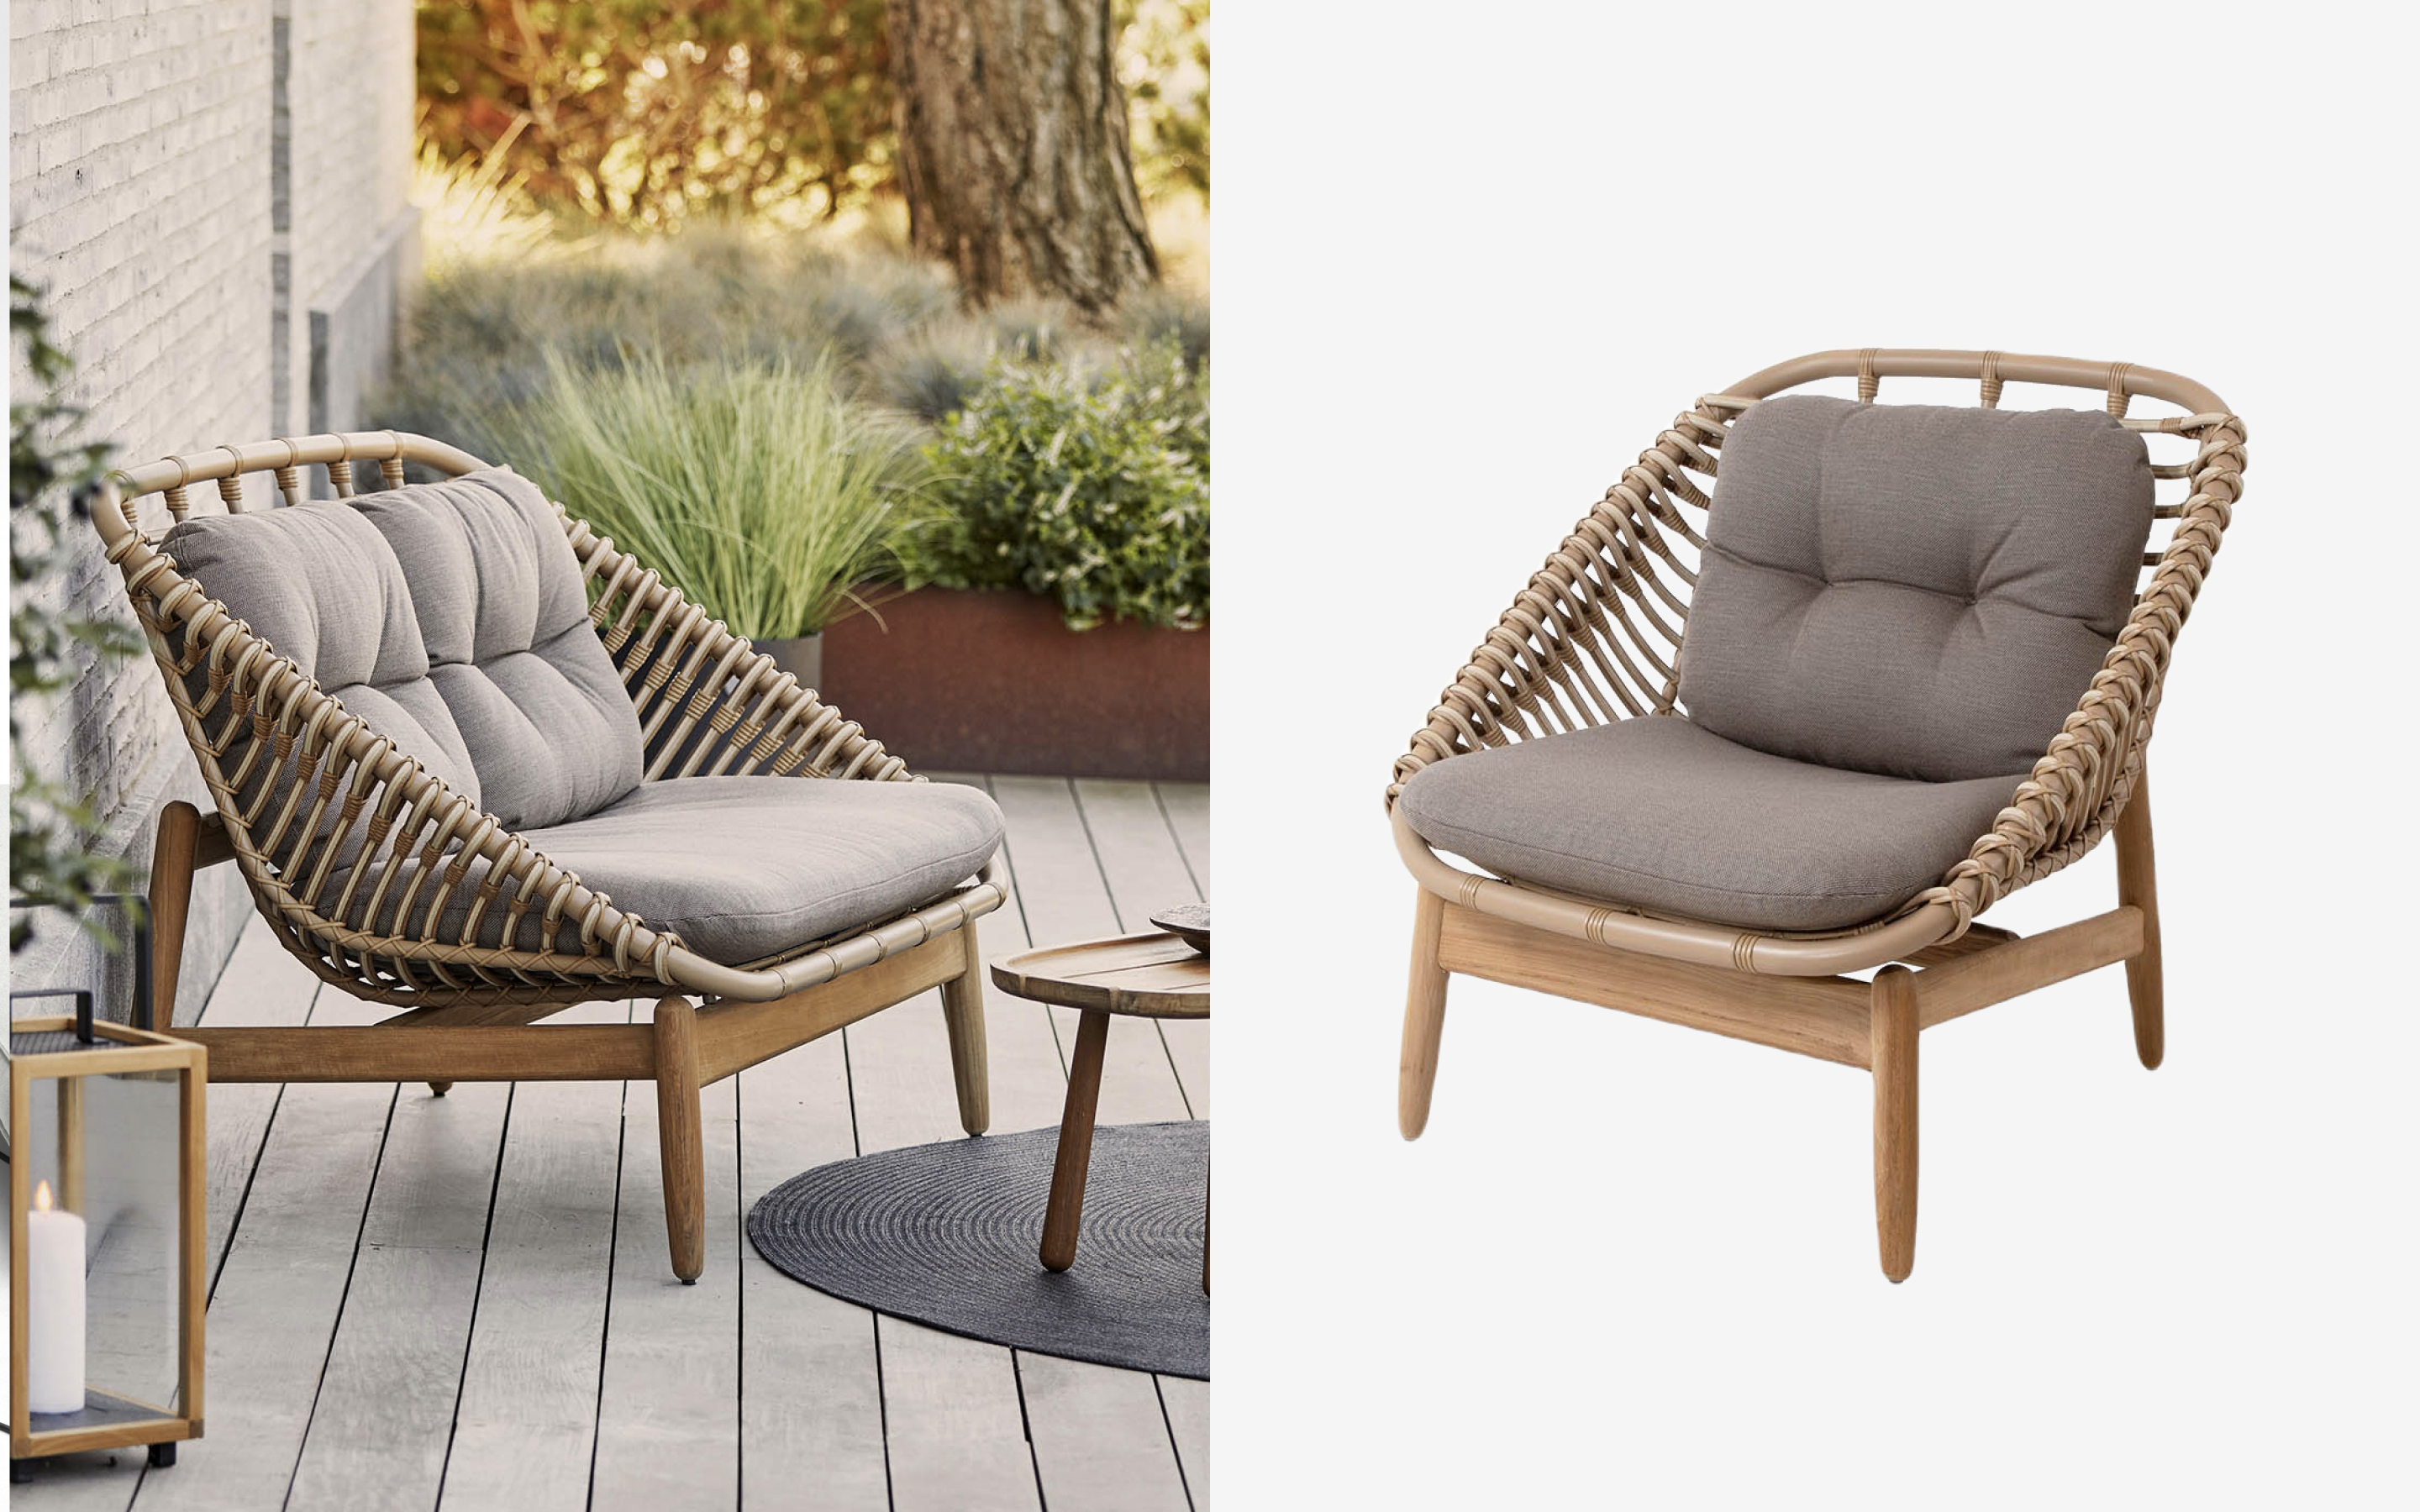 Rattan lounge chair with grey seat and back cushion